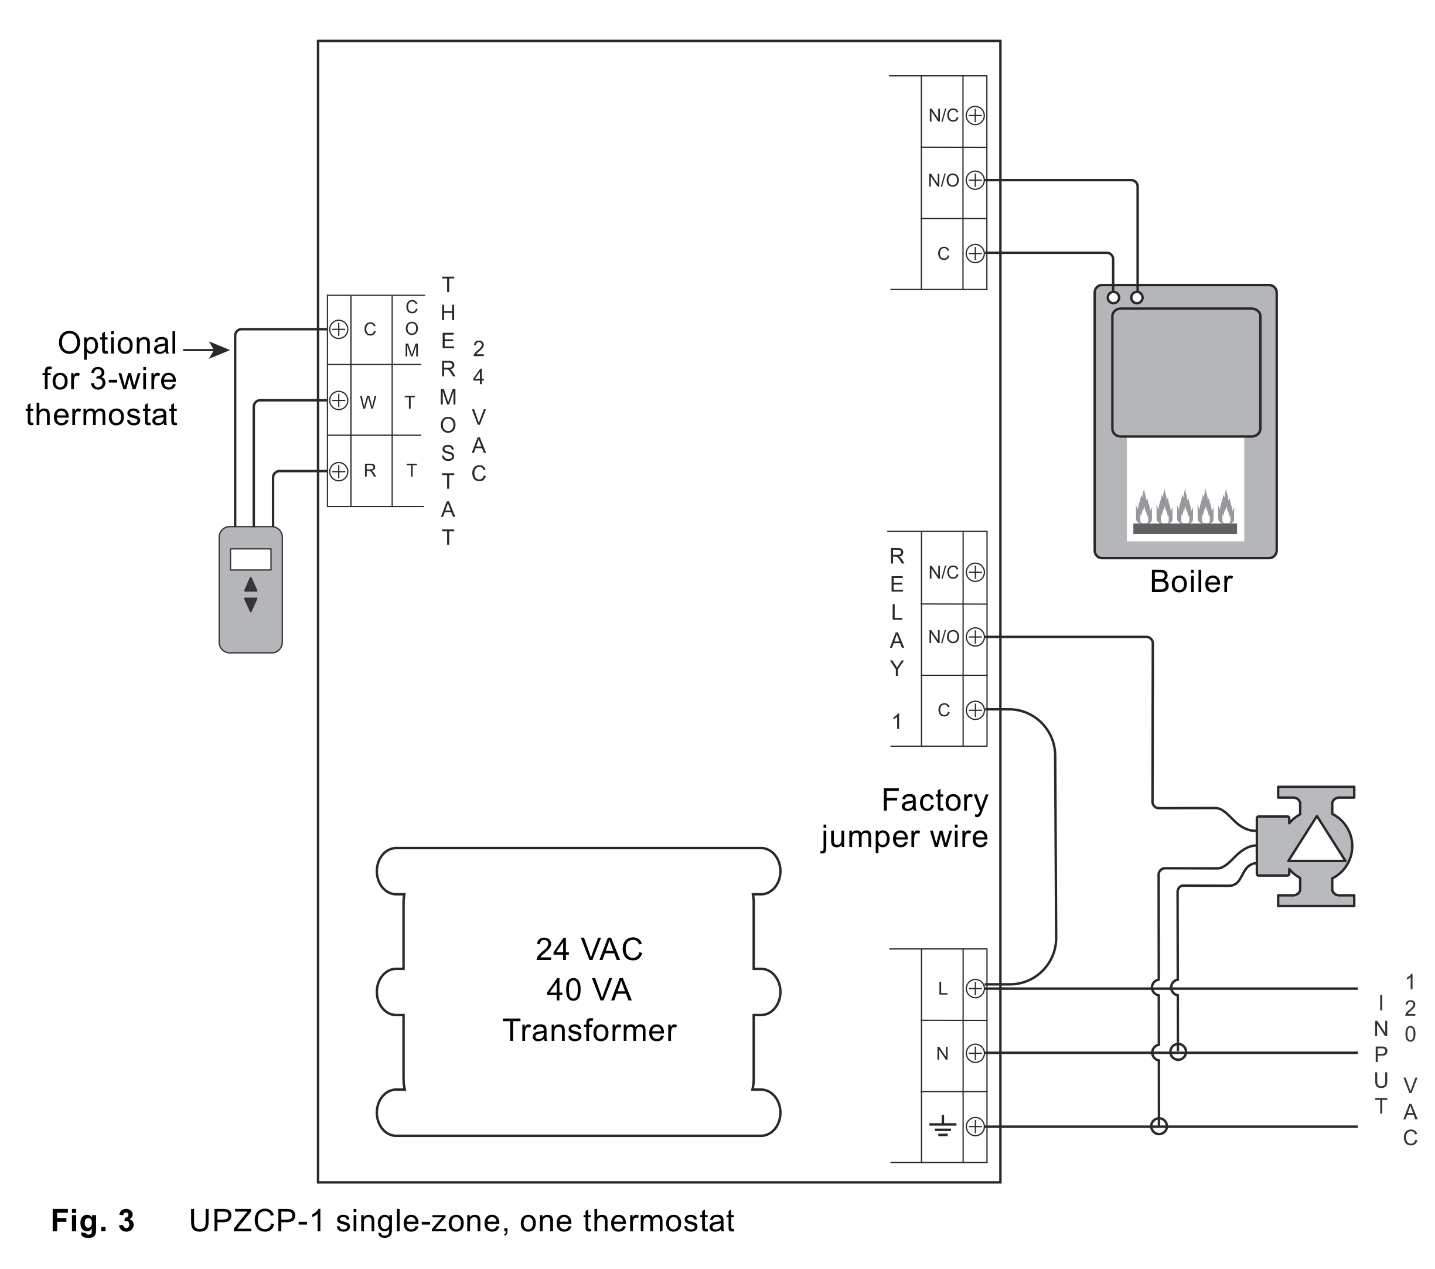 how can i add additional circulator relay to existing thermostat limitorque wiring schematic also included here is the wiring schematic for the relay i'm particularly concerned about having two transformers in the same system